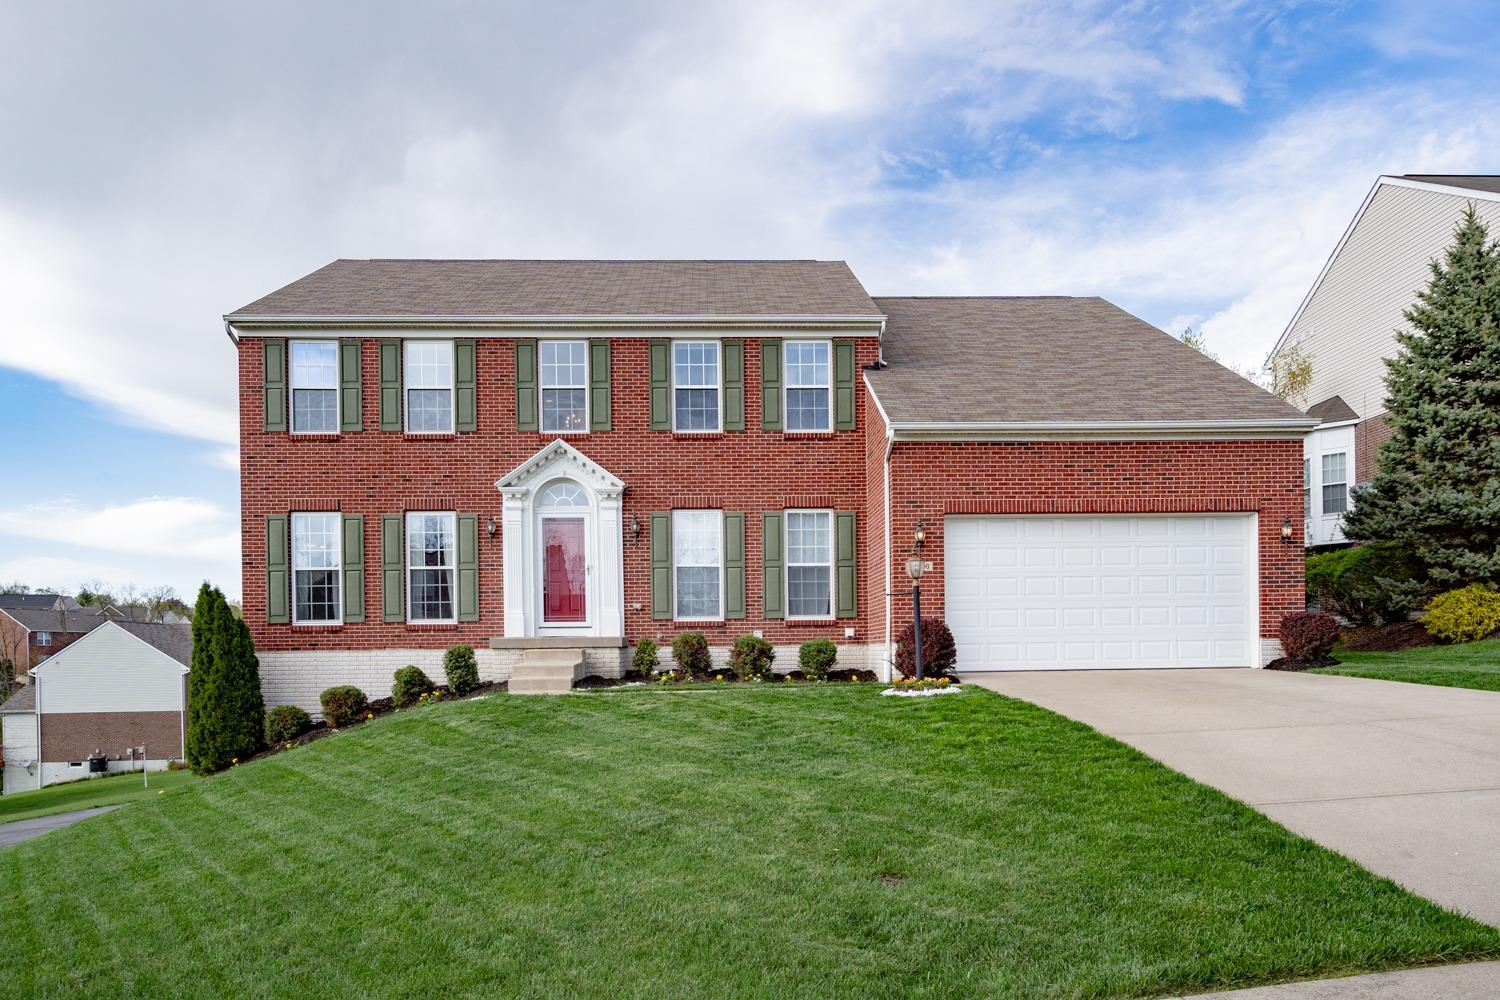 Property for sale at 4866 Blue Meadow Lane, Colerain Twp,  Ohio 45251